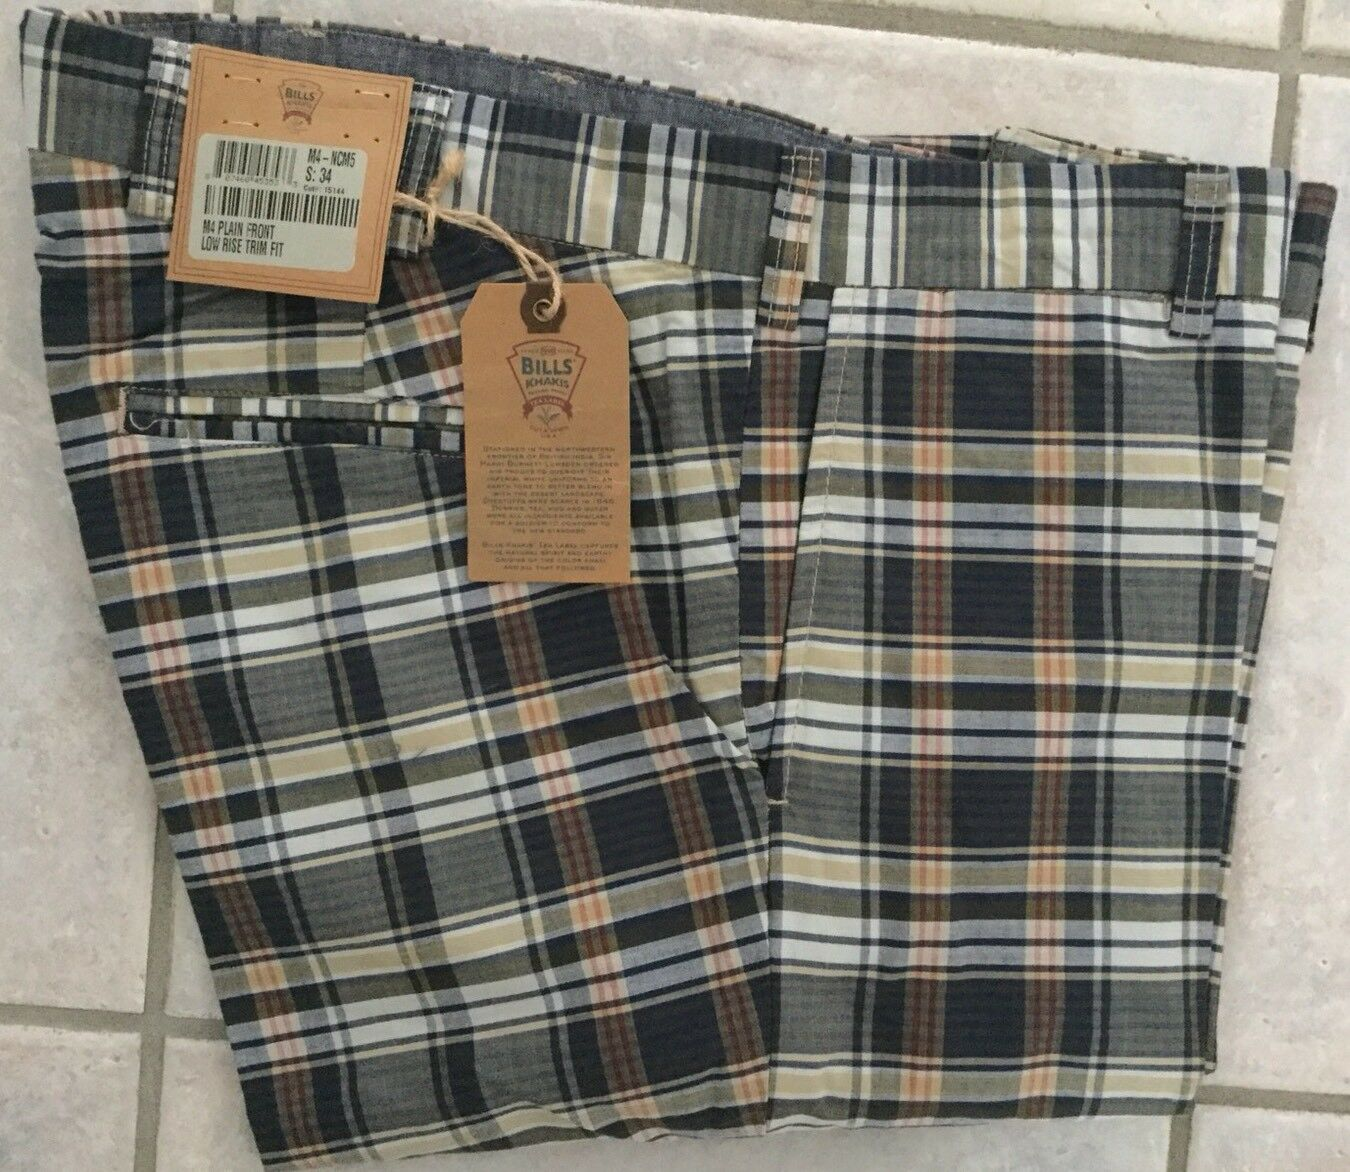 NWT-Bills khakis M4-NCM5 Size 34 PLAIN FRONT LOW RISE TRIM FIT PLAID